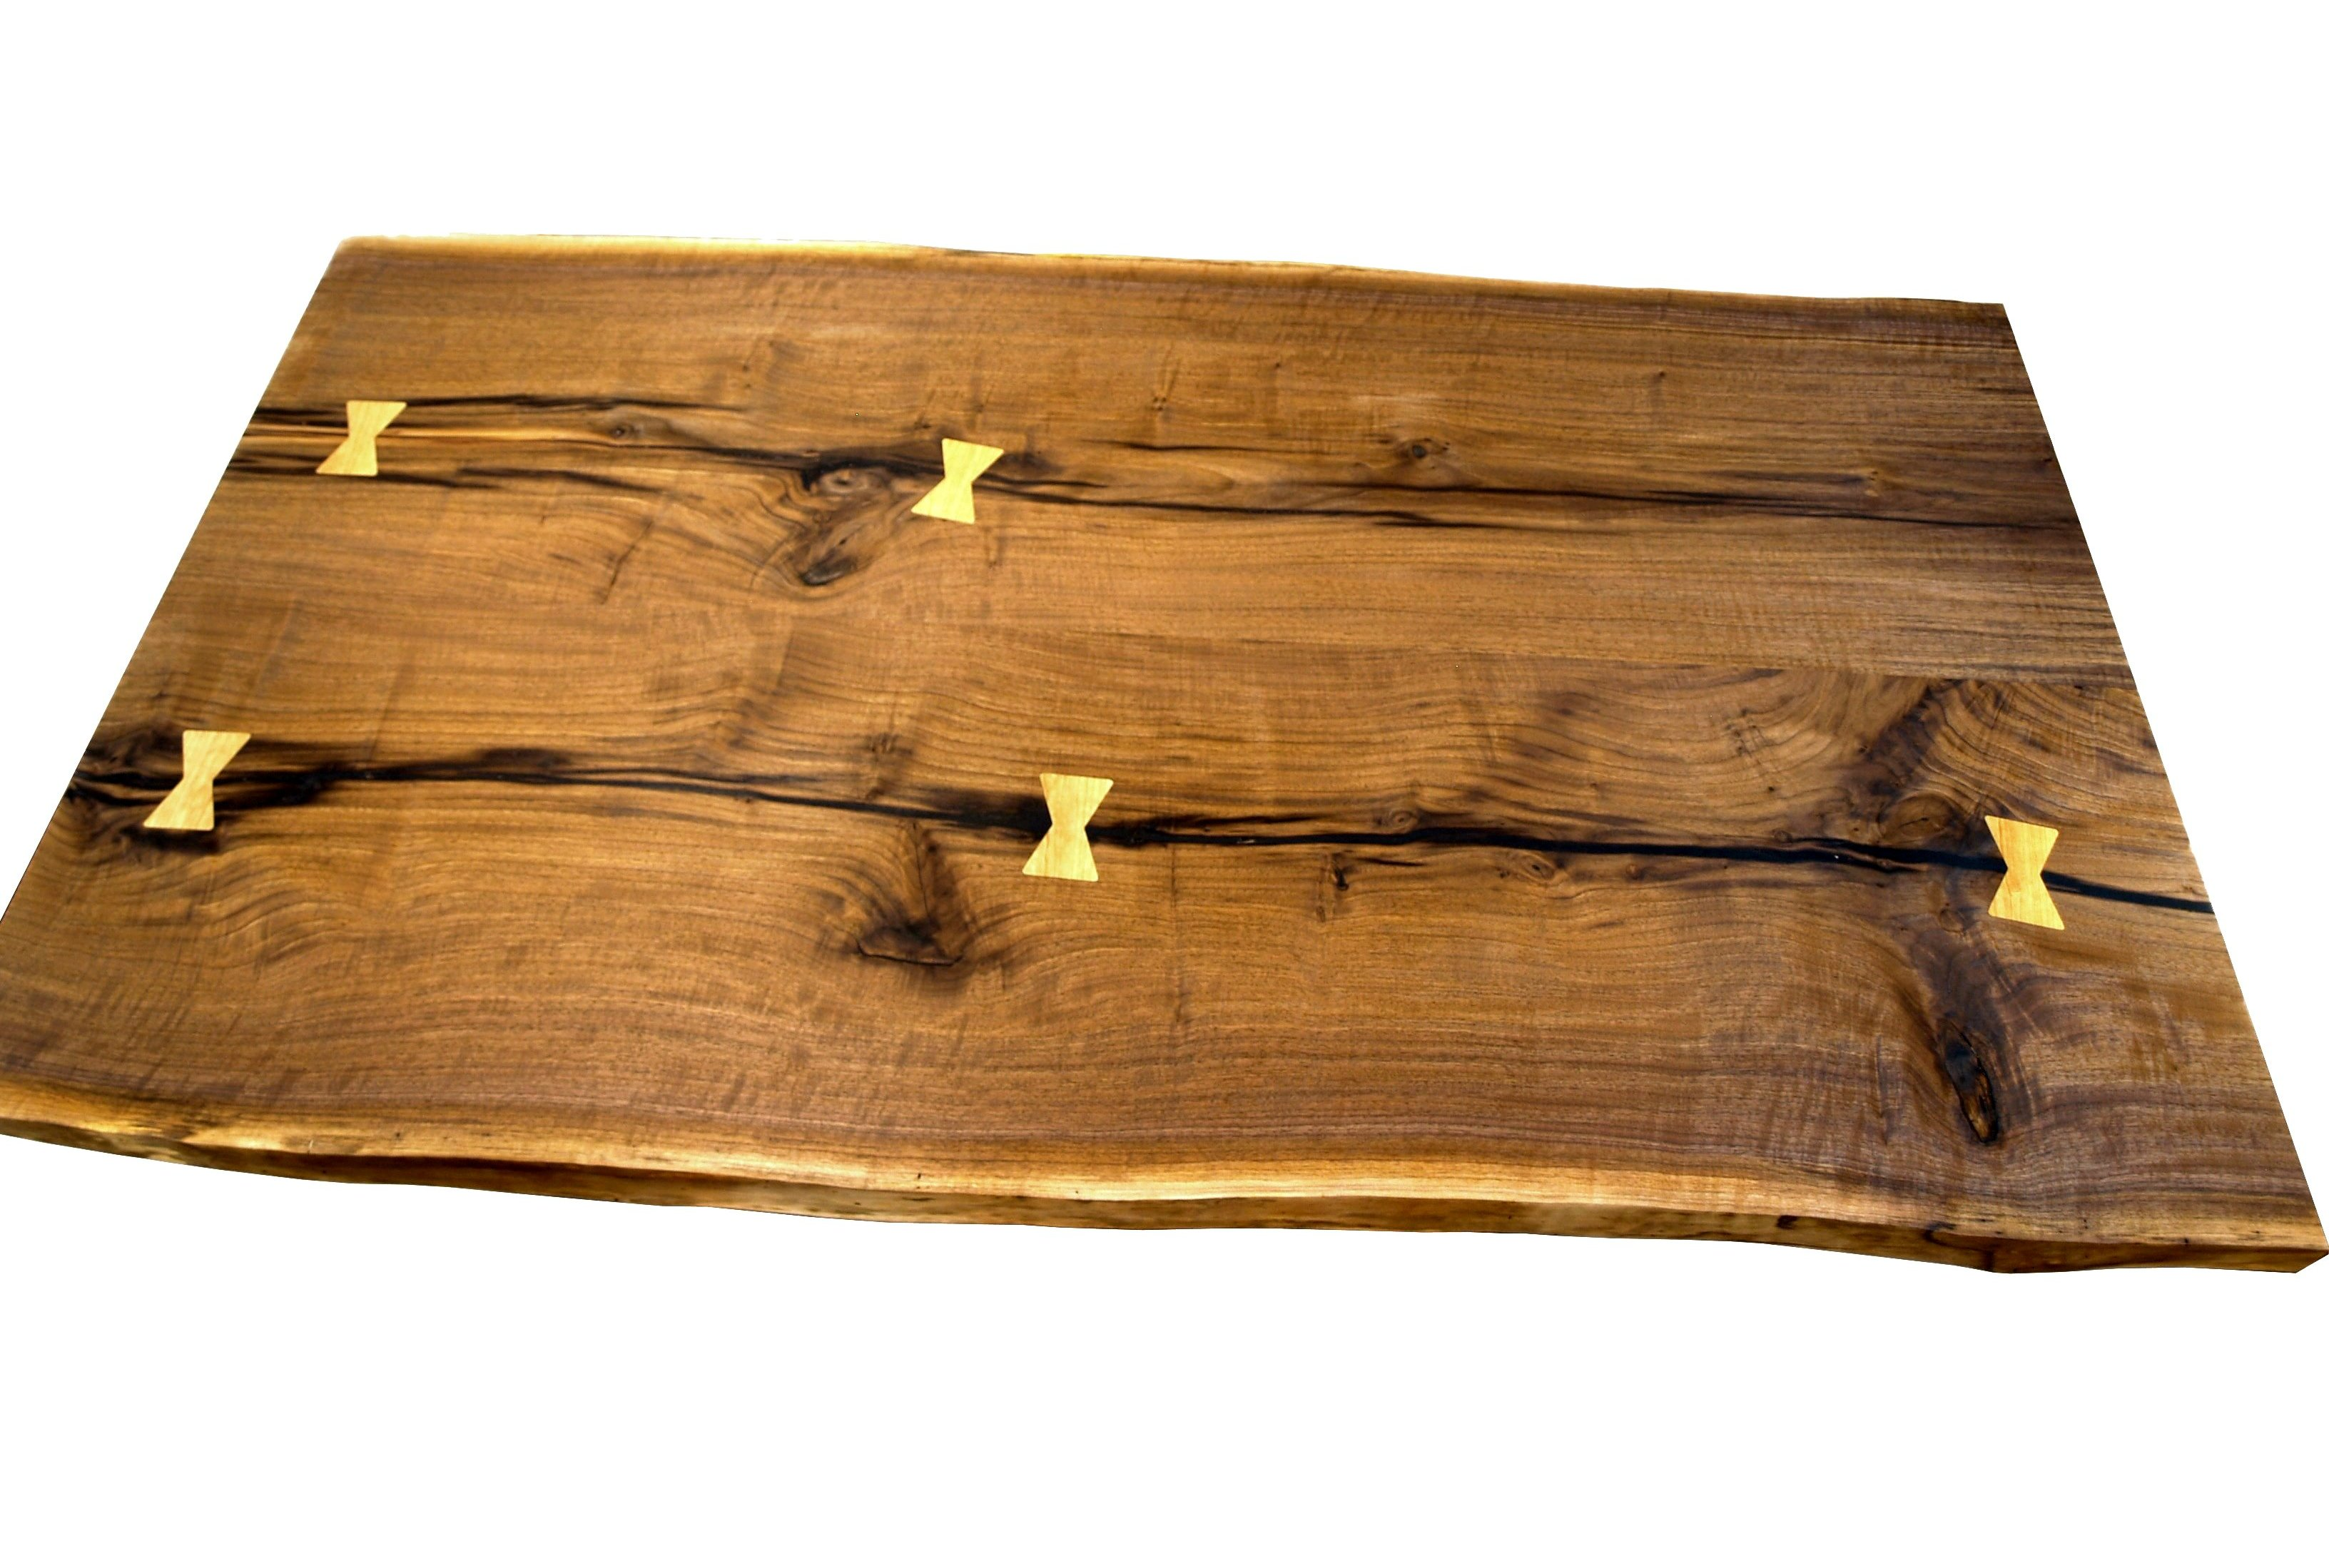 Etonnant Custom Walnut Slab Table Top With Maple Butterfly Inlays. Constructed From  One Long Slab Cut